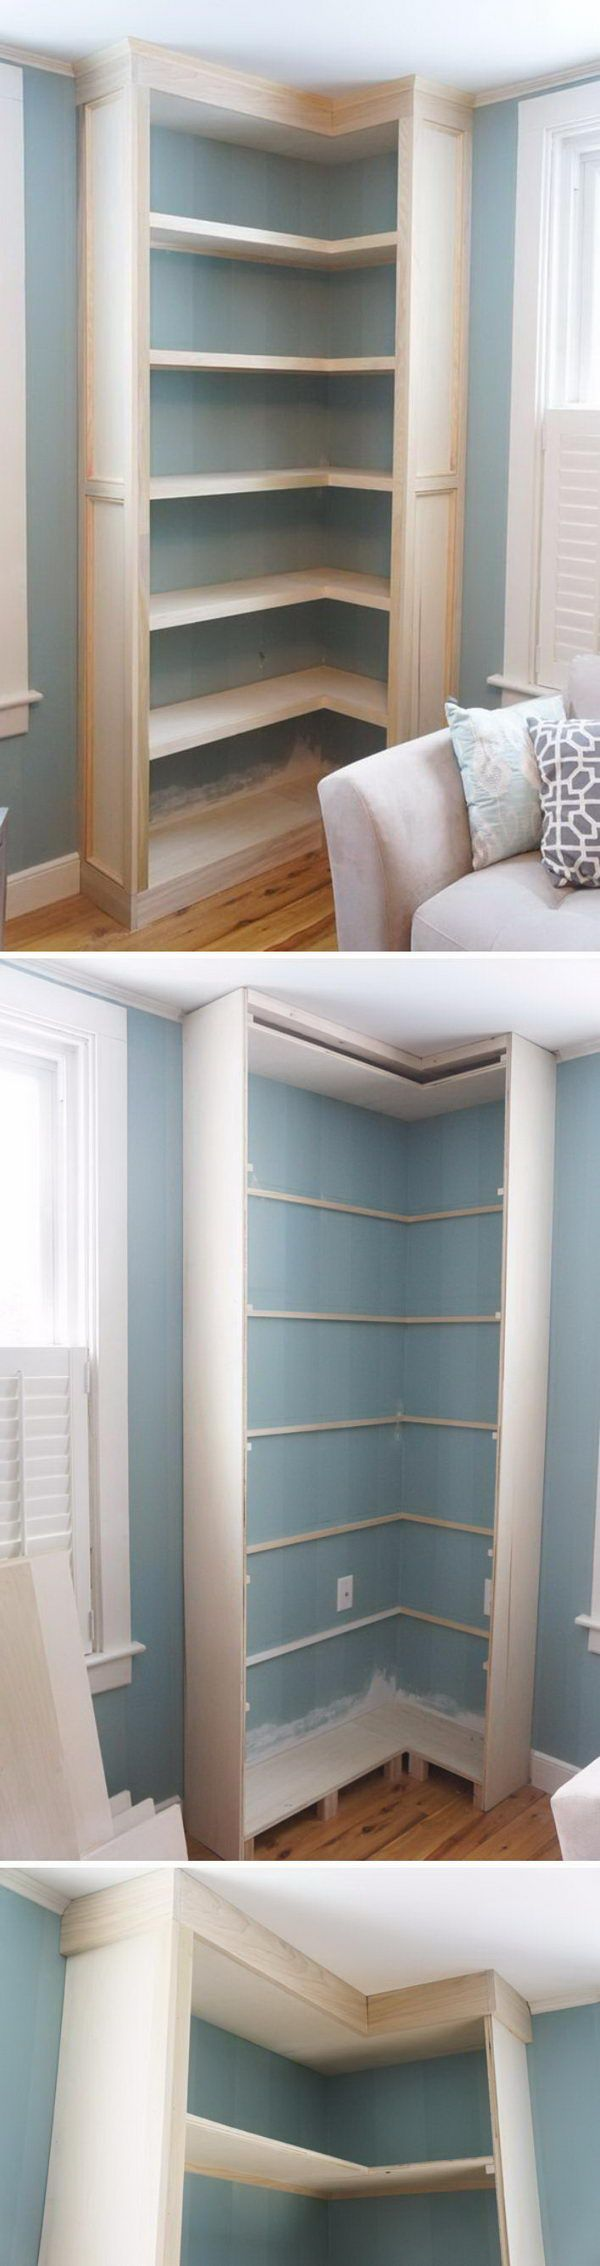 DIY Built in Corner Shelves.